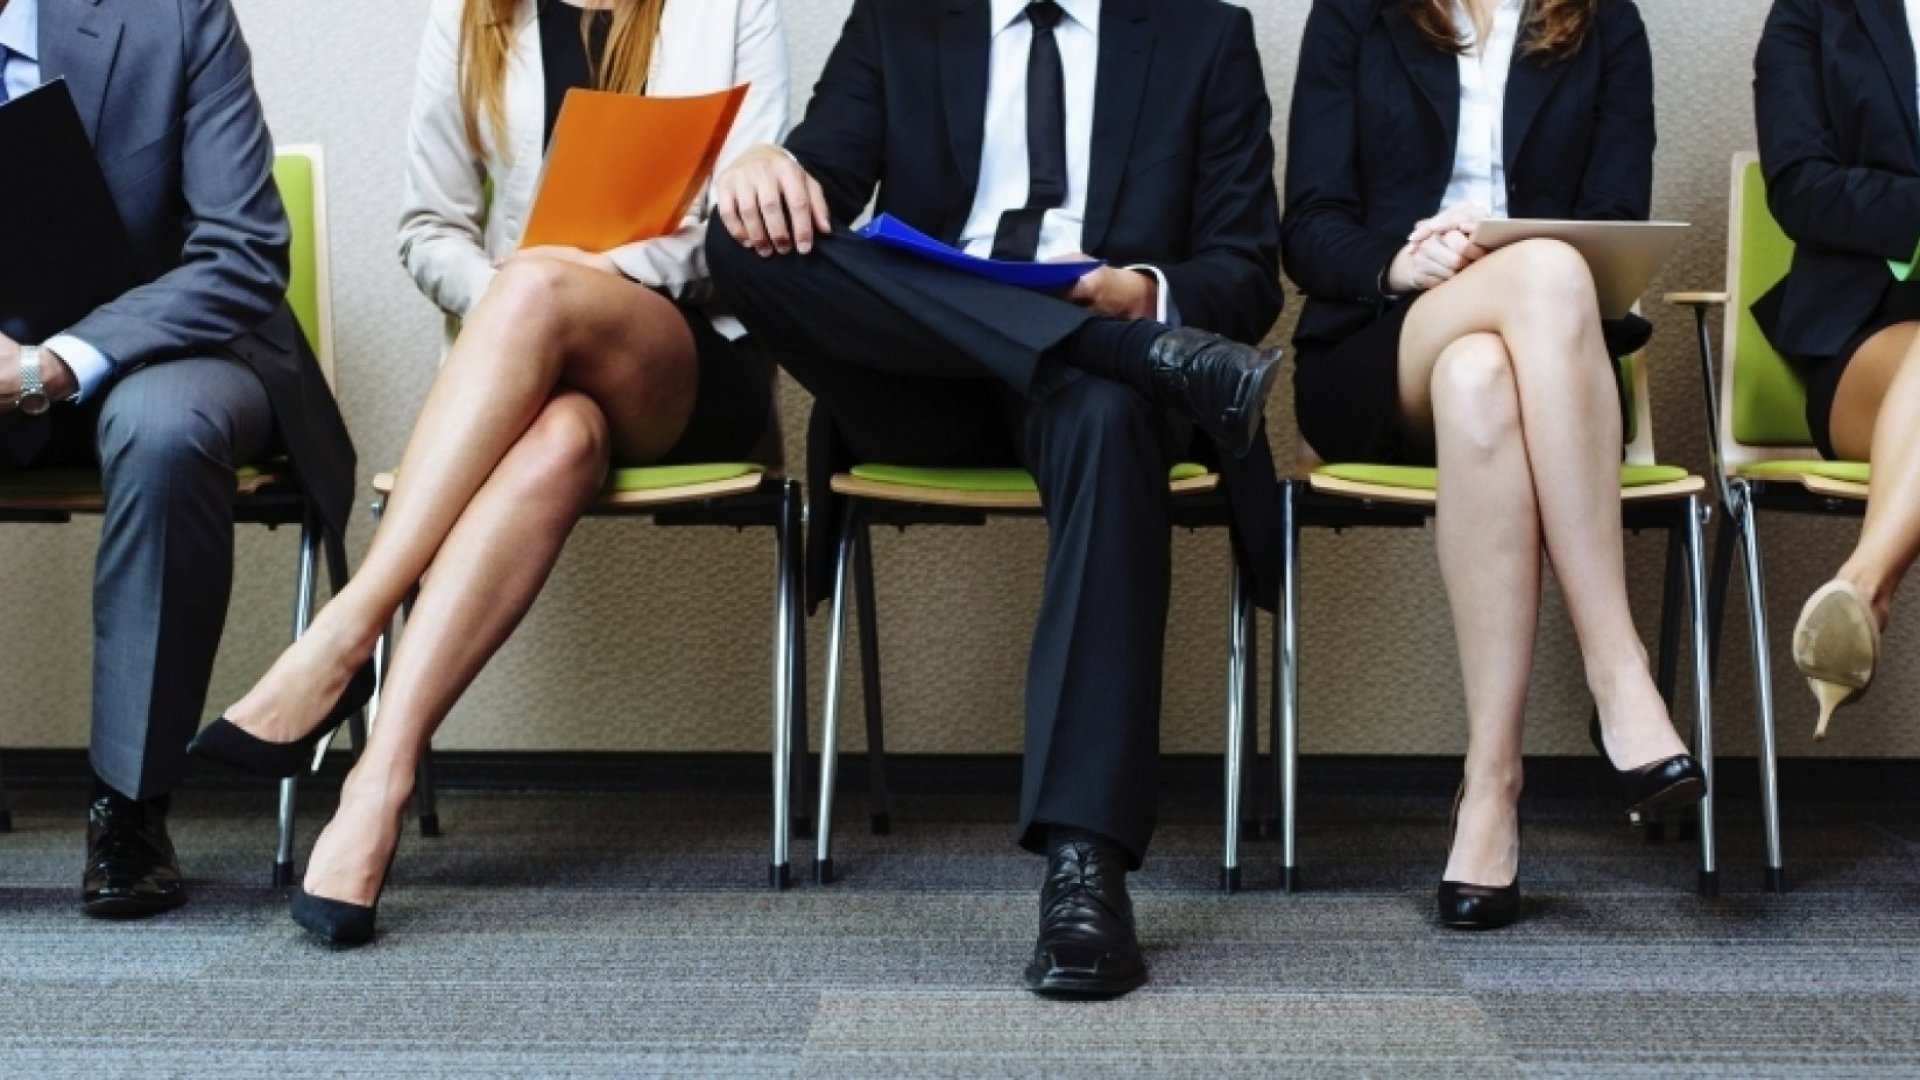 11 Interesting Hiring Statistics You Should Know